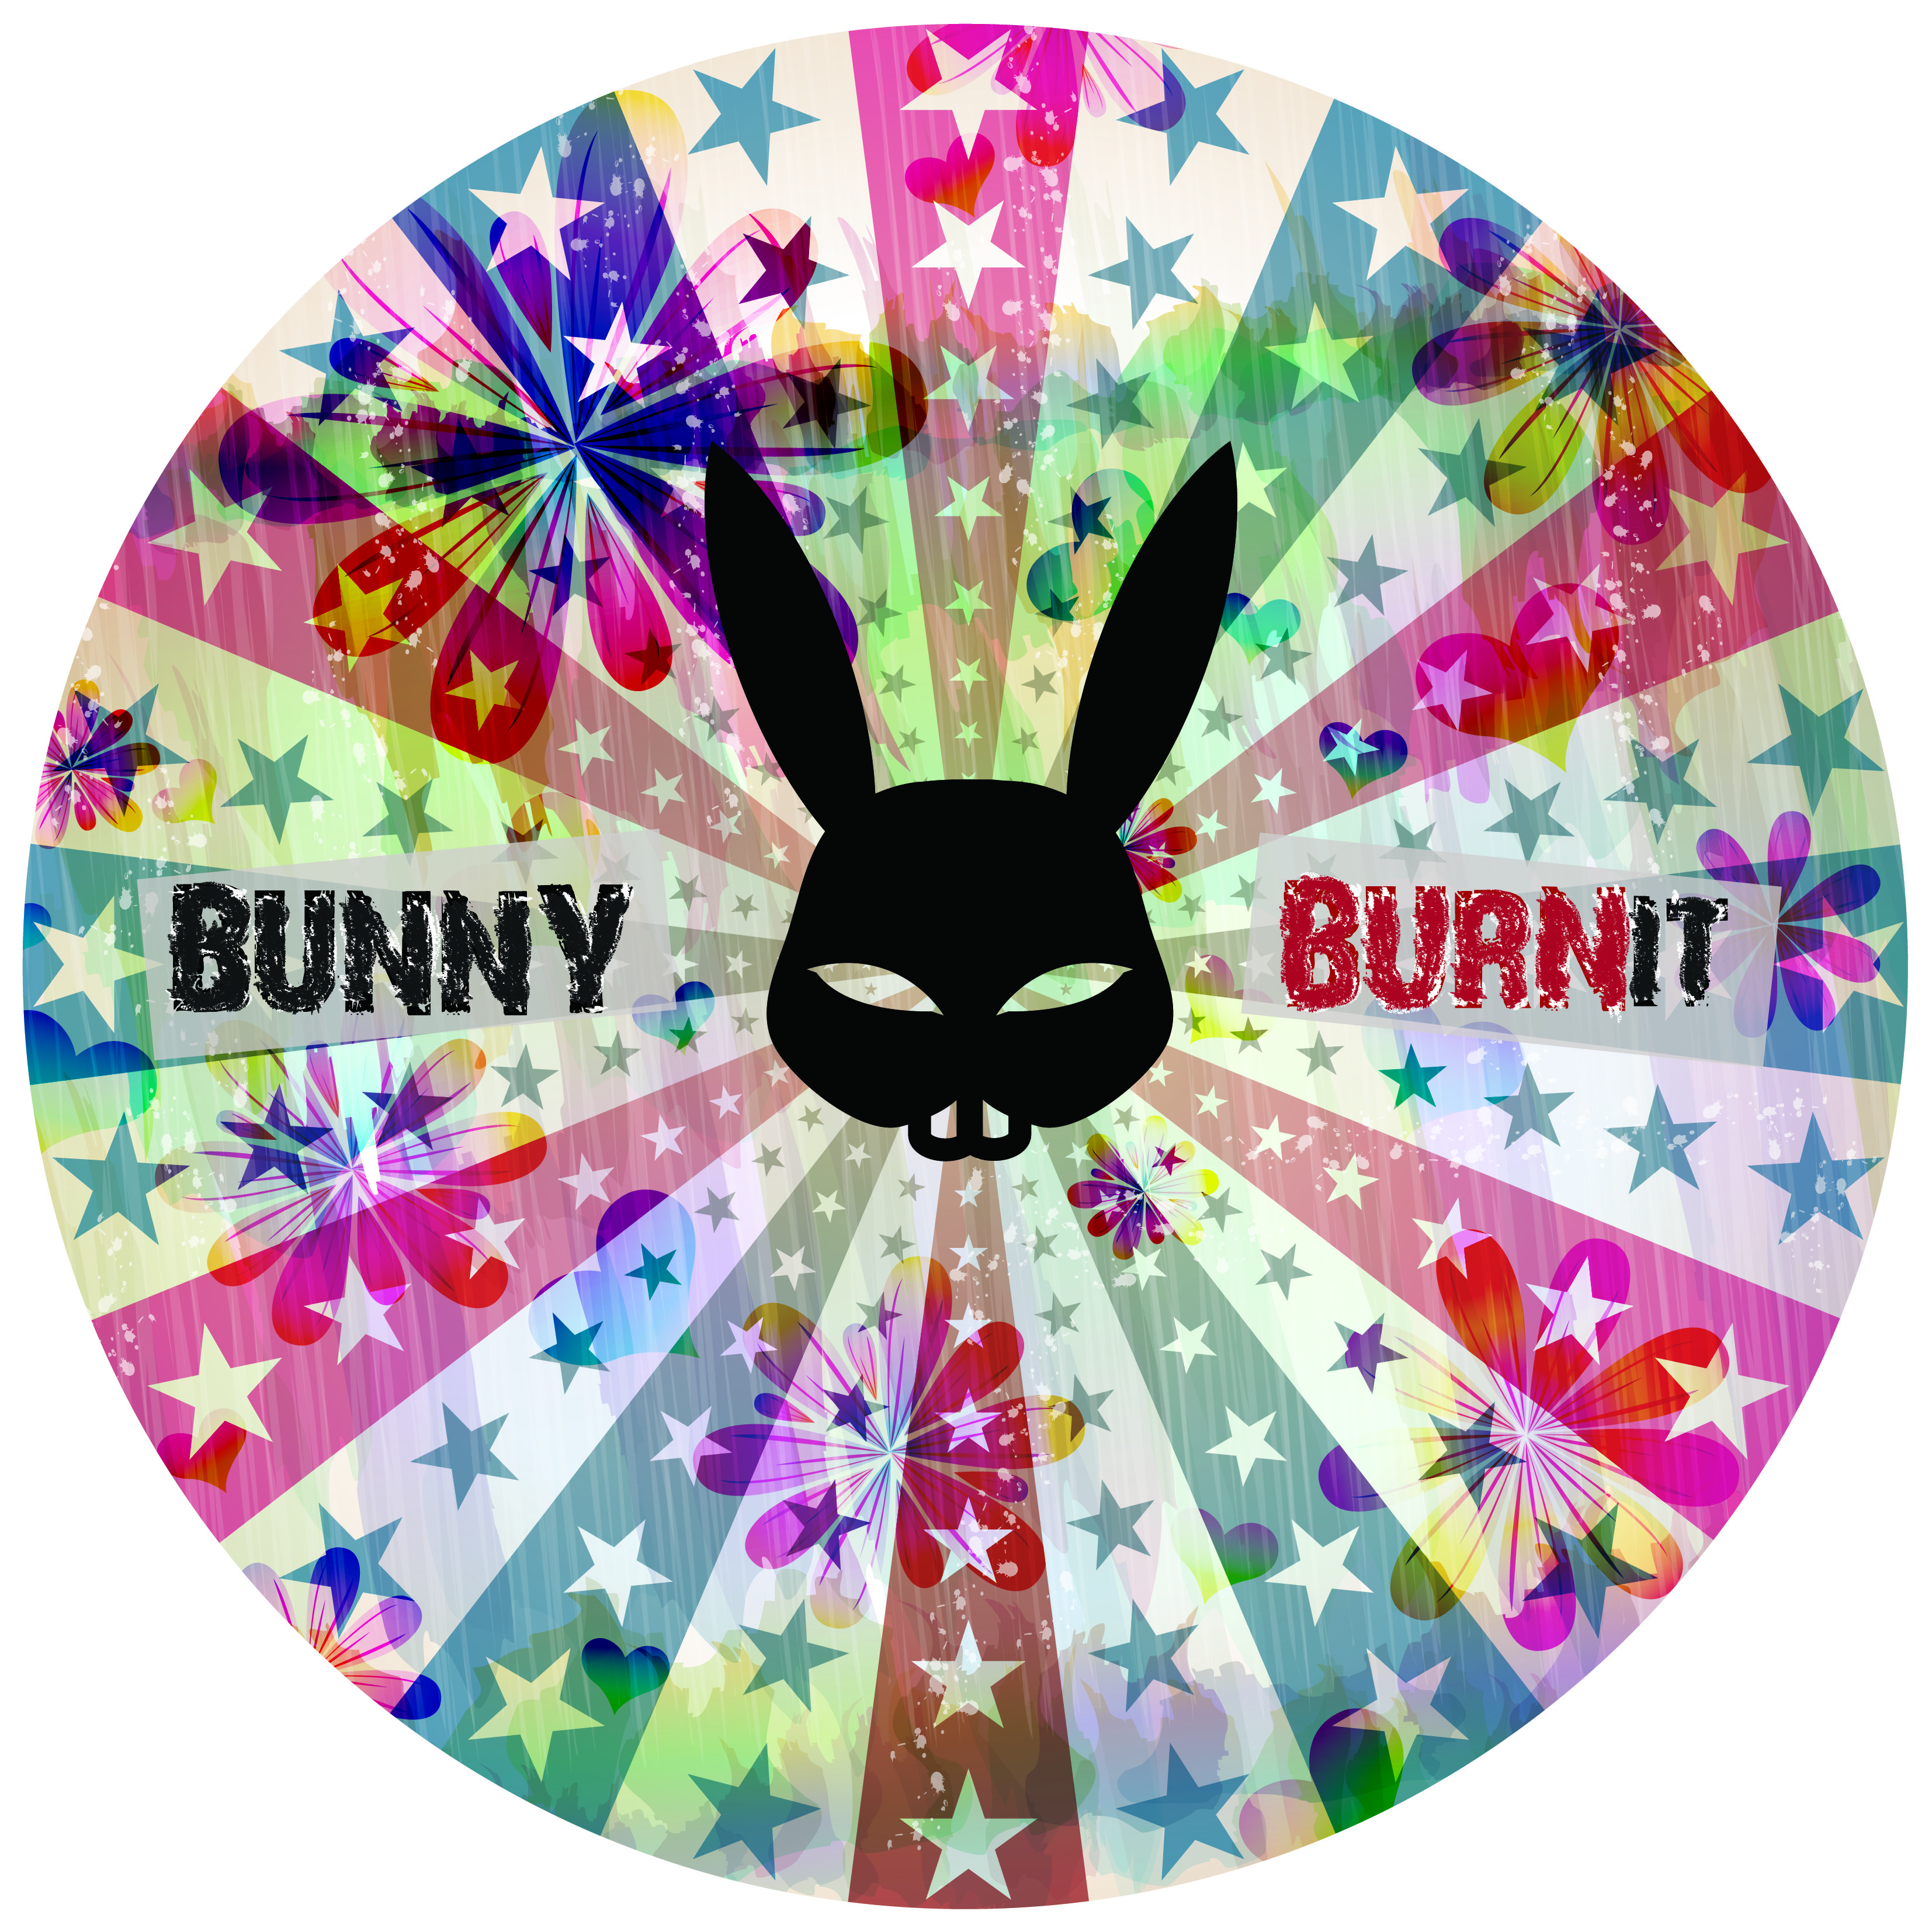 #Bunny #fan 버니부채   BUNNY BURNIT is a NEW Online Communication Platfrom using volatile messages that will be deleted permanently from the sever and the online sapce after the burning time. ★Messages will be bunt whether you write with your real name or anonymously. ★No trace : Freedom of expression. ★Like speaking in realtime, it only remains in your memory. 버니버닛은 휘발성 메시지를 이용하여, 미리 설정한 조건에 따라 글이 휘발되는 새로운 메시지! ★원하는 시간 뒤 사라지는 메시지! ★표현은 자유롭게, 흔적은 남지 않는다! https://apps.facebook.com/bunnyburnit/